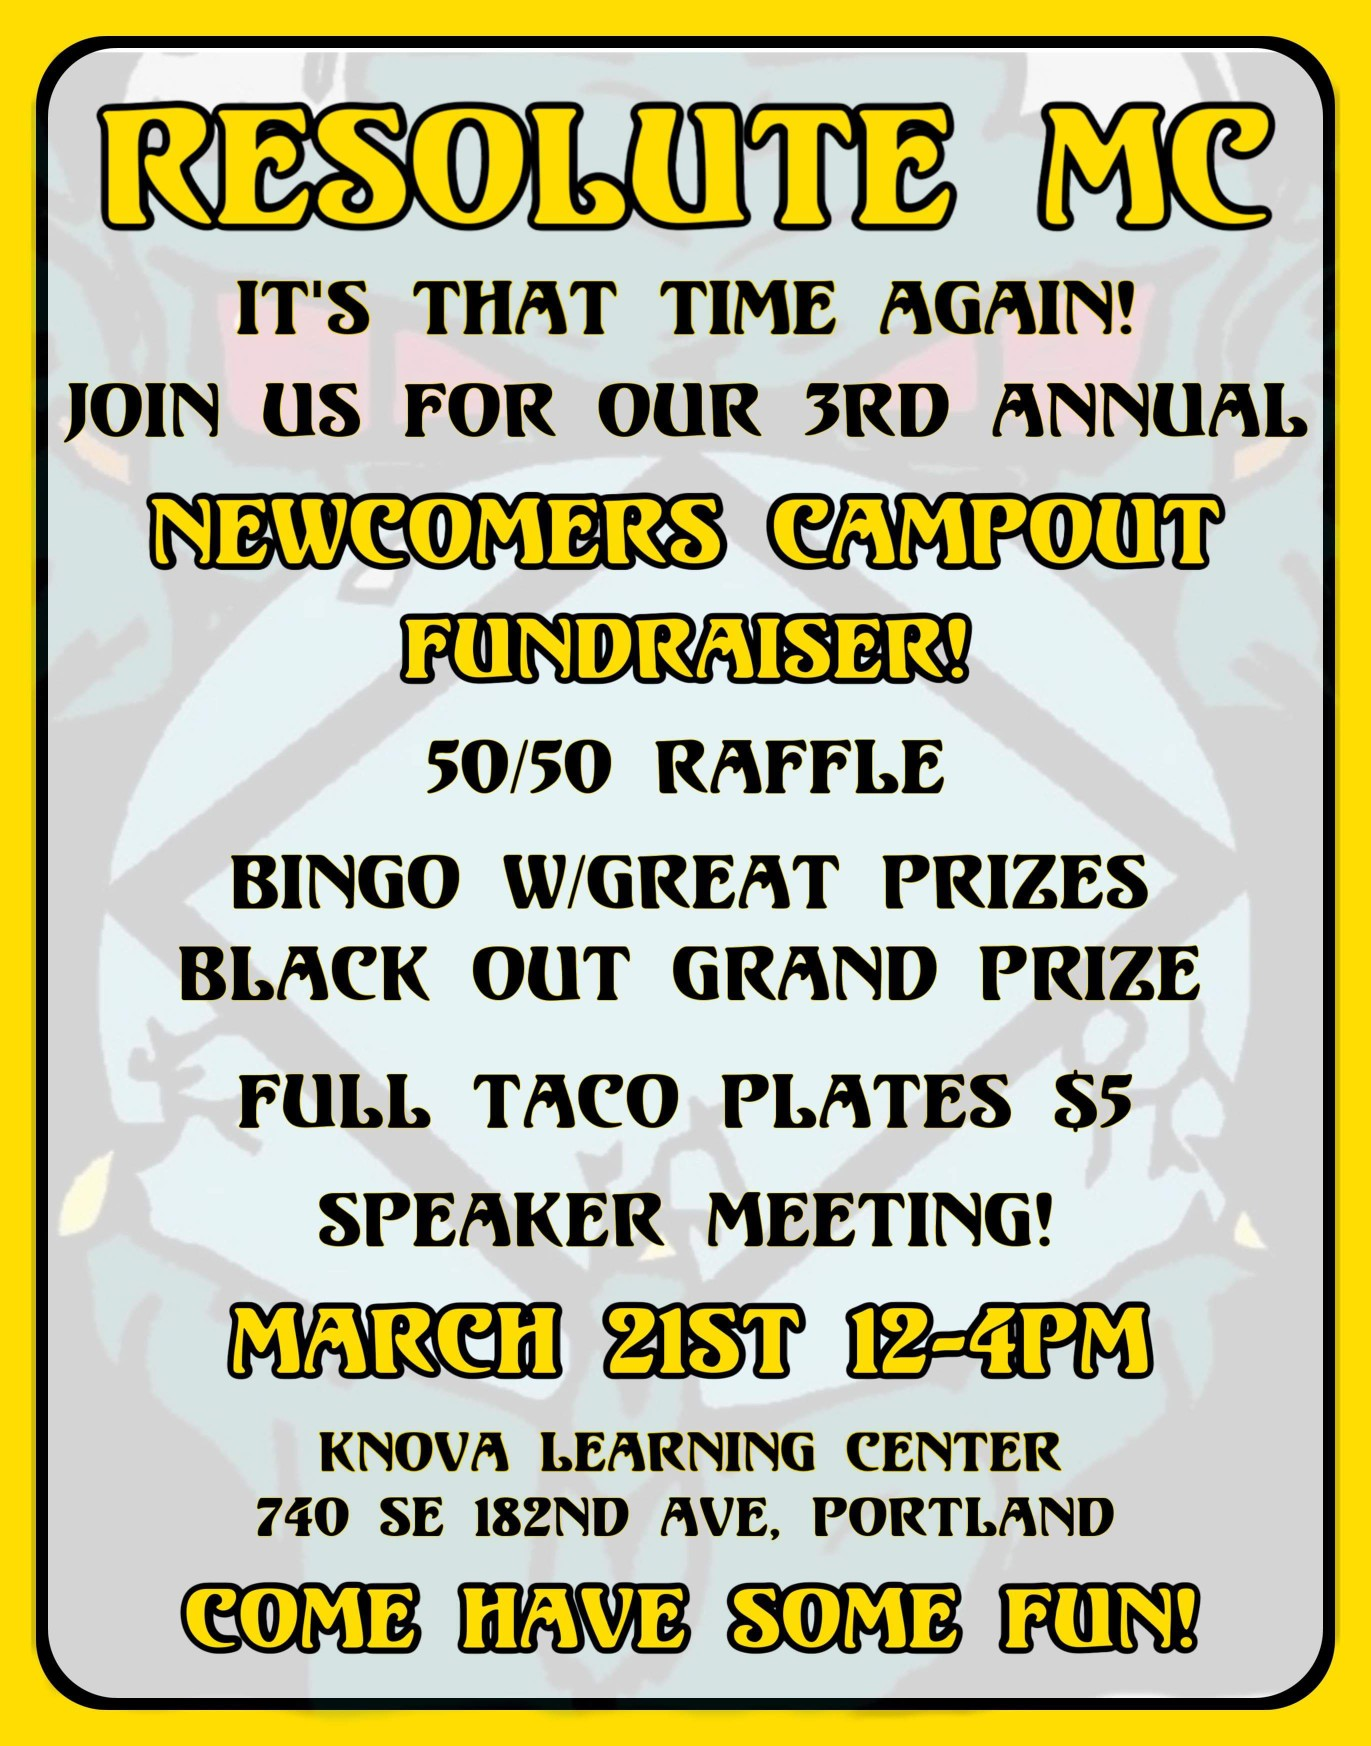 Flyer for March 21st Fundraiser Event